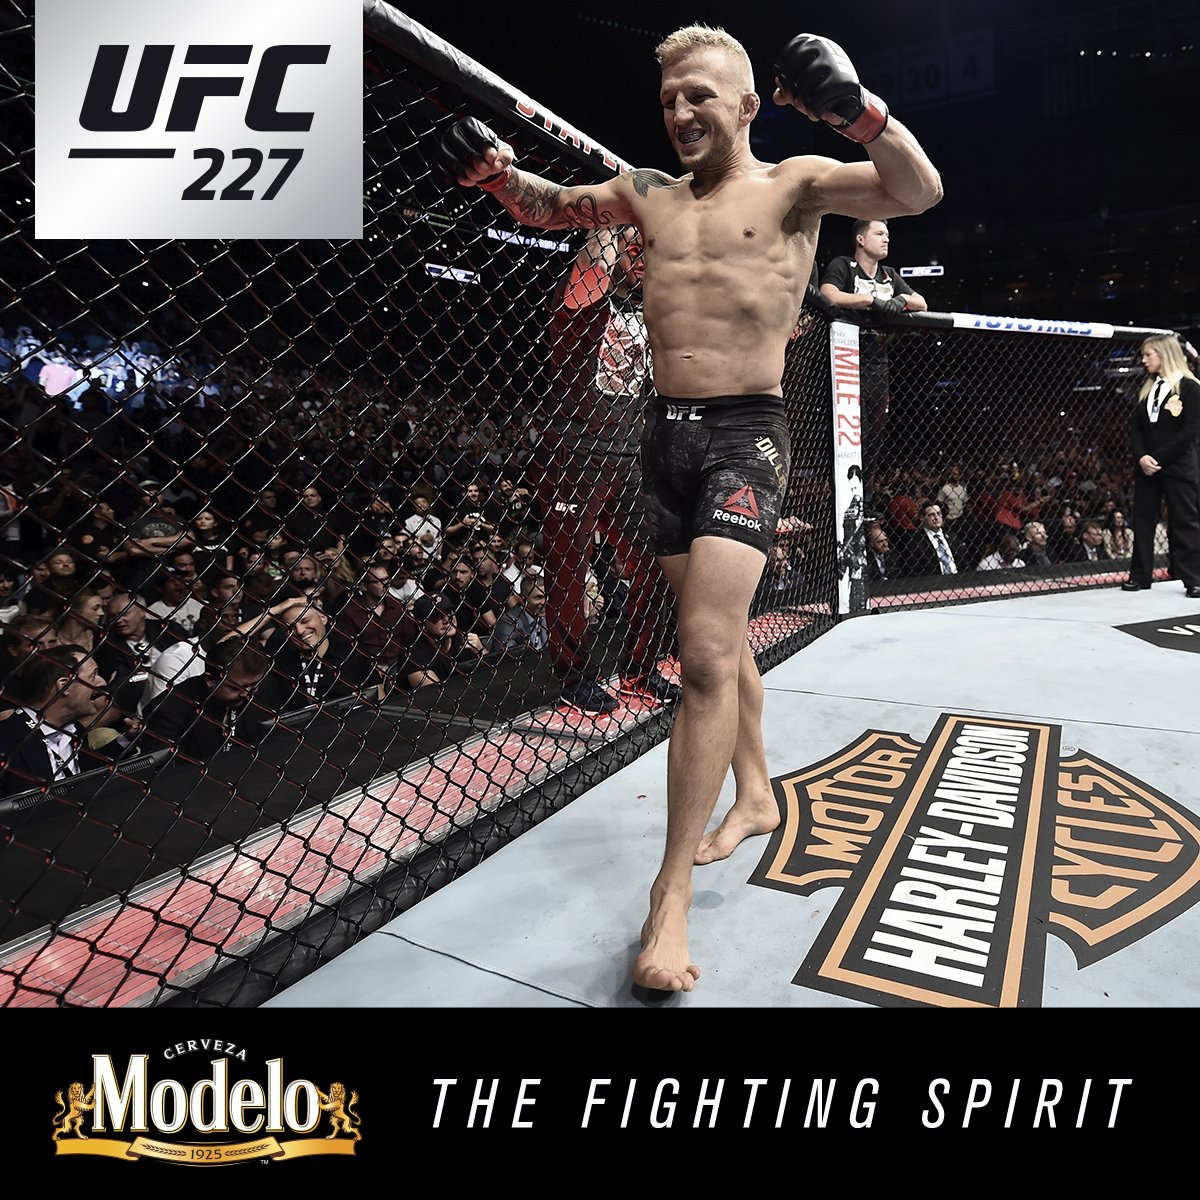 Leaving no doubt.  @TJDillashaw rose to the occassion once more showing his #FightingSpirit. @ModeloUSA #UFC227